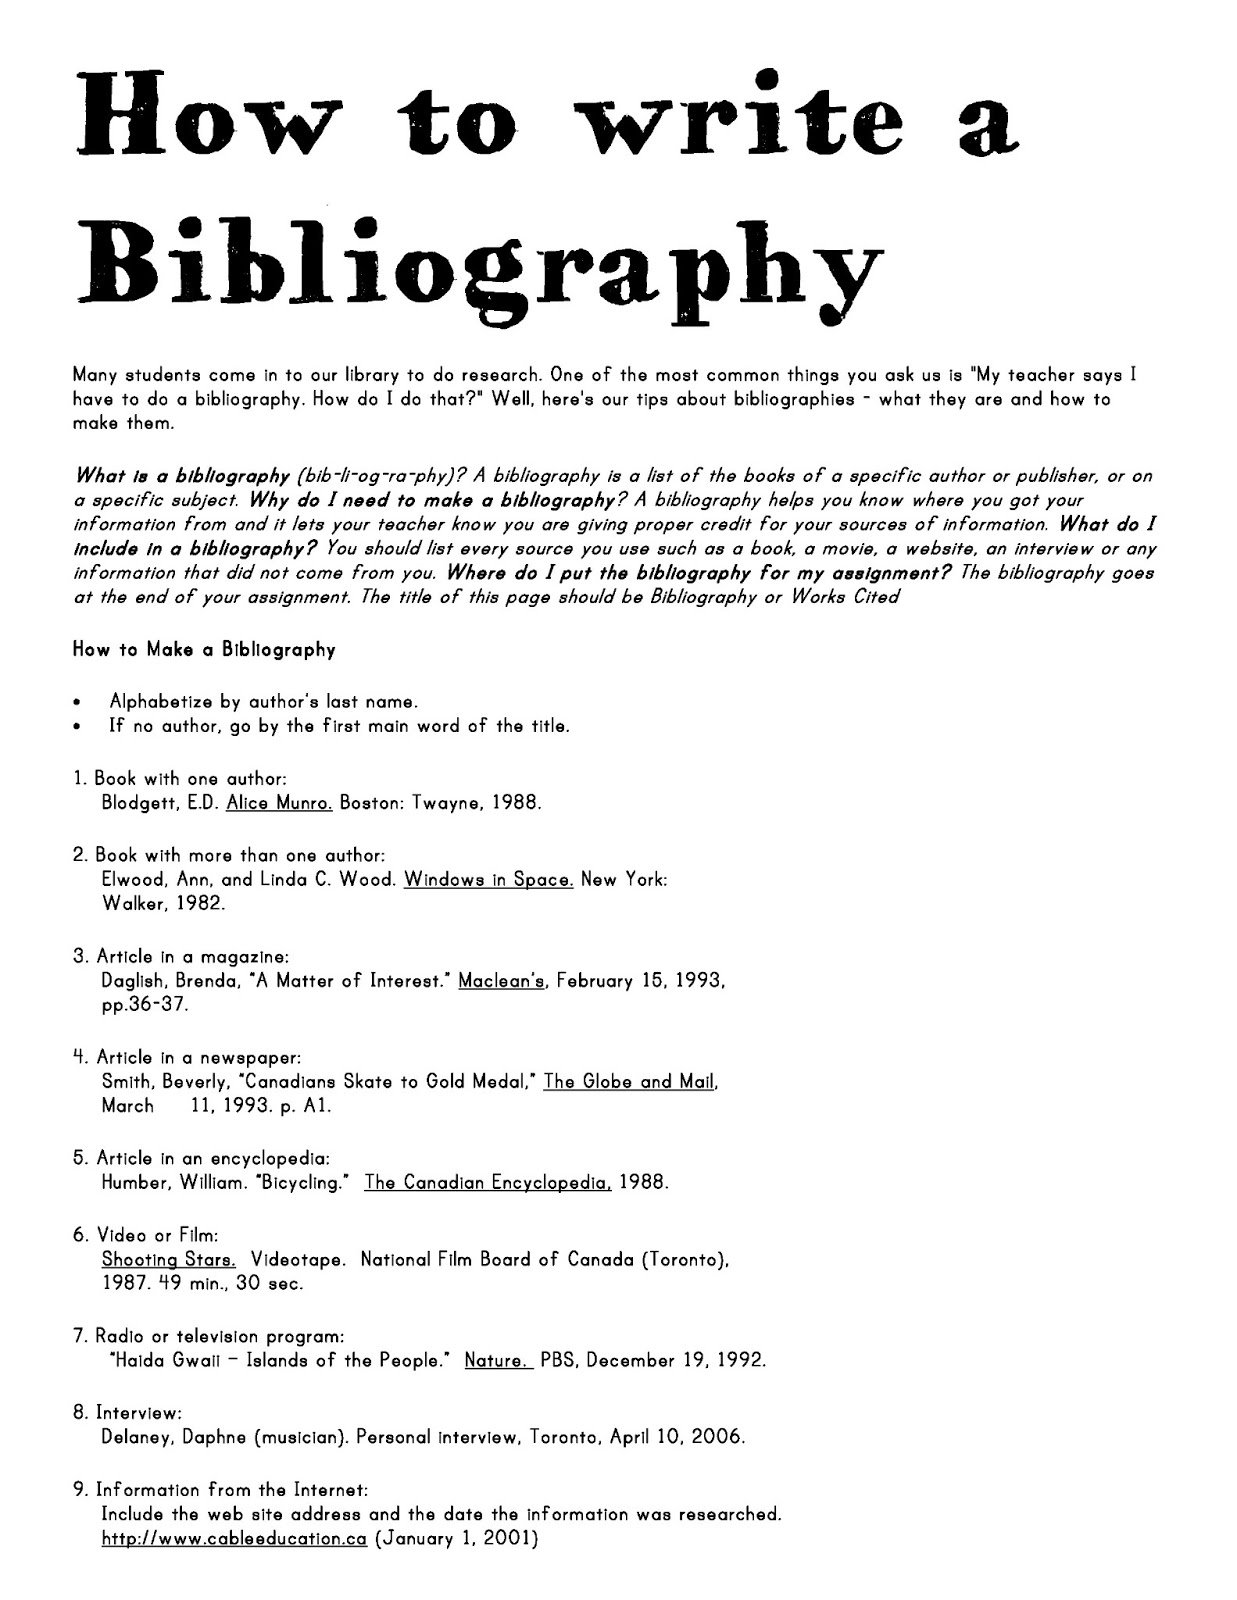 how to write a bibliography for an assignment of rights